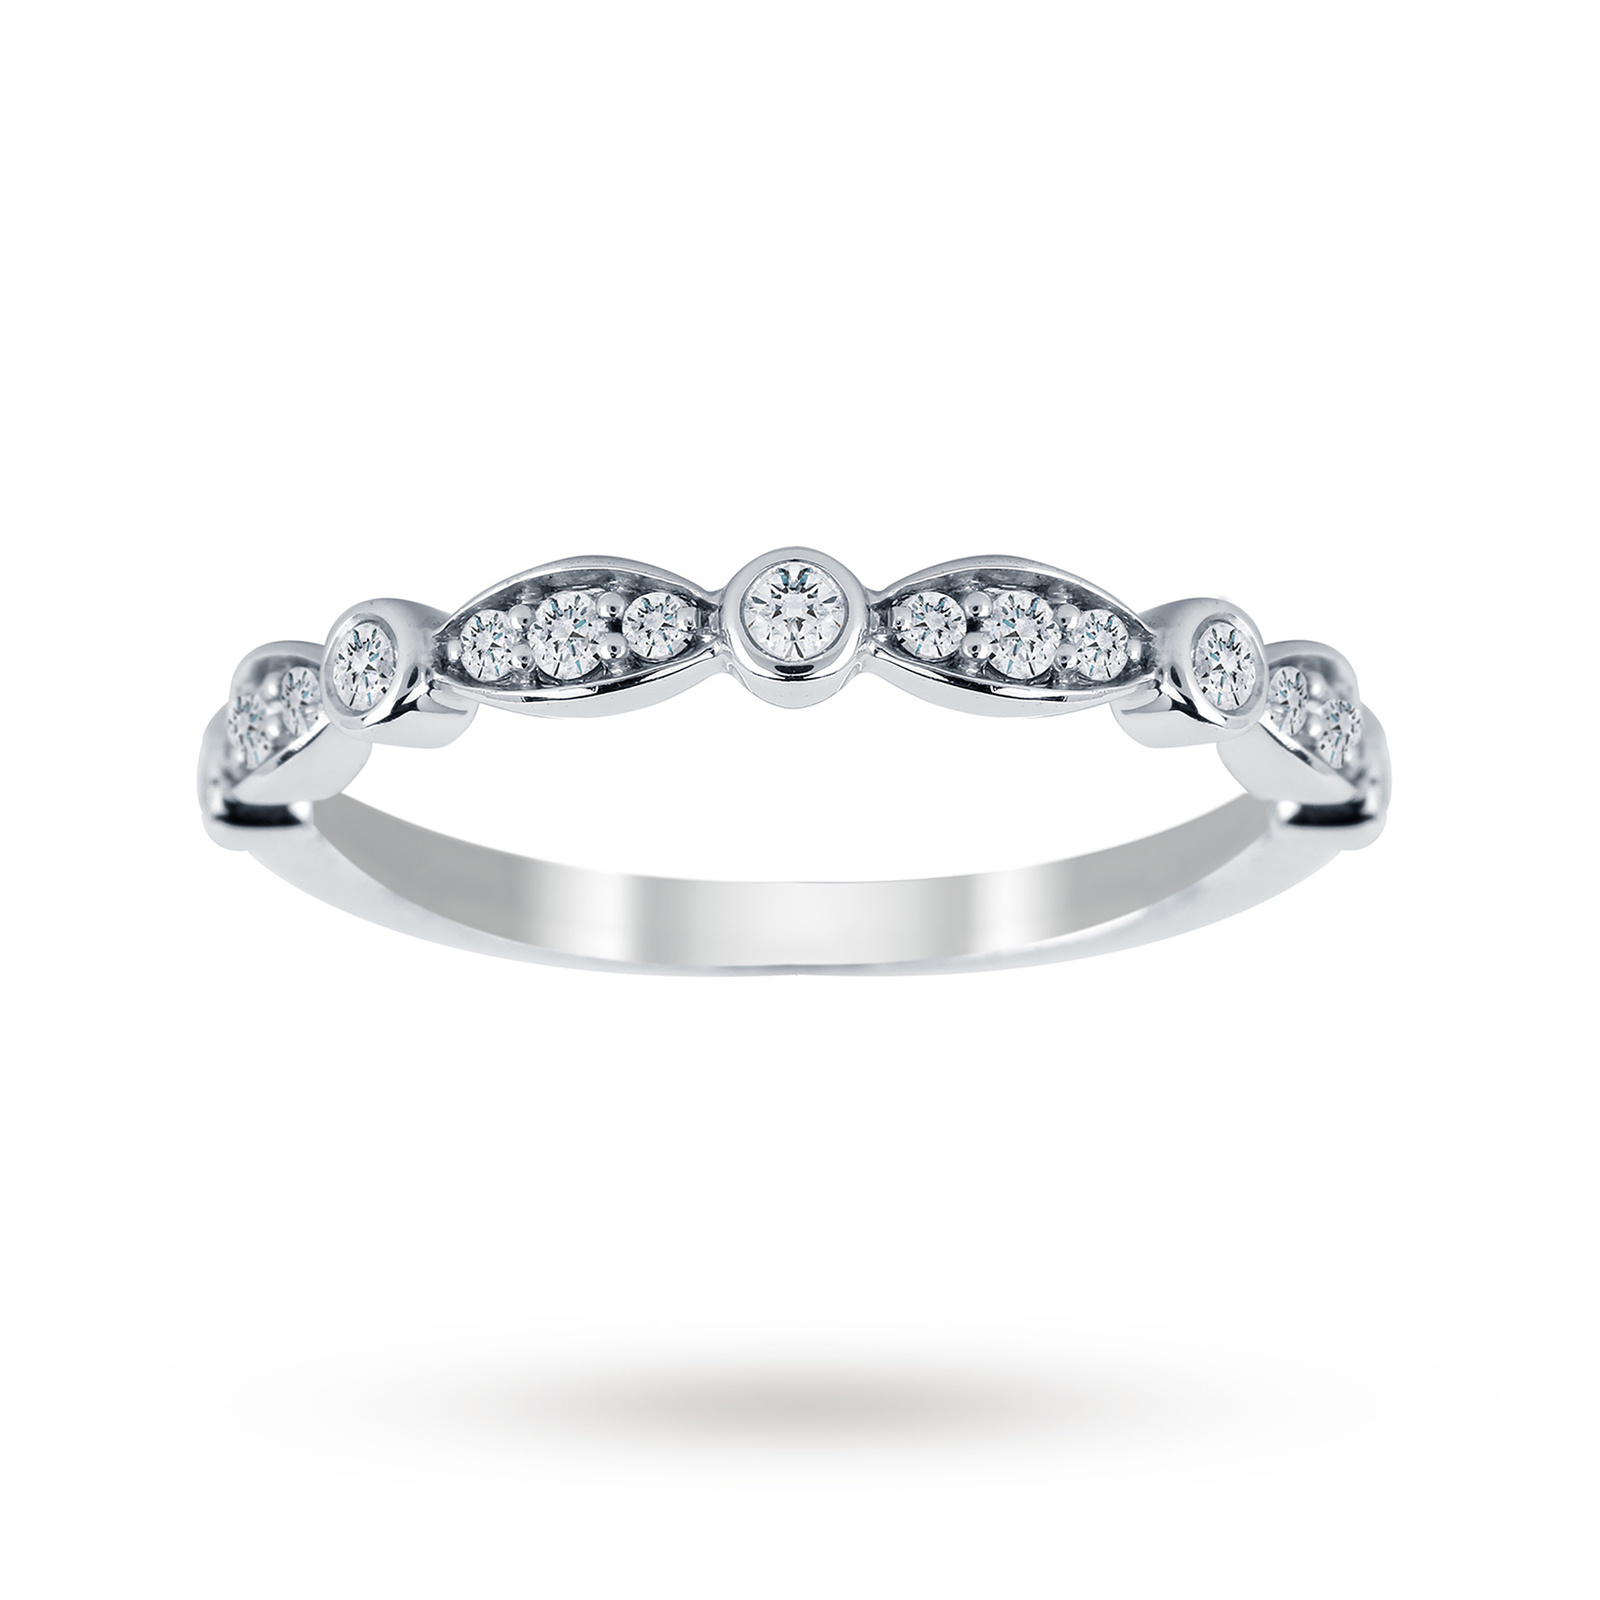 Jenny Packham 18ct White Gold 0.20cttw Band Ring